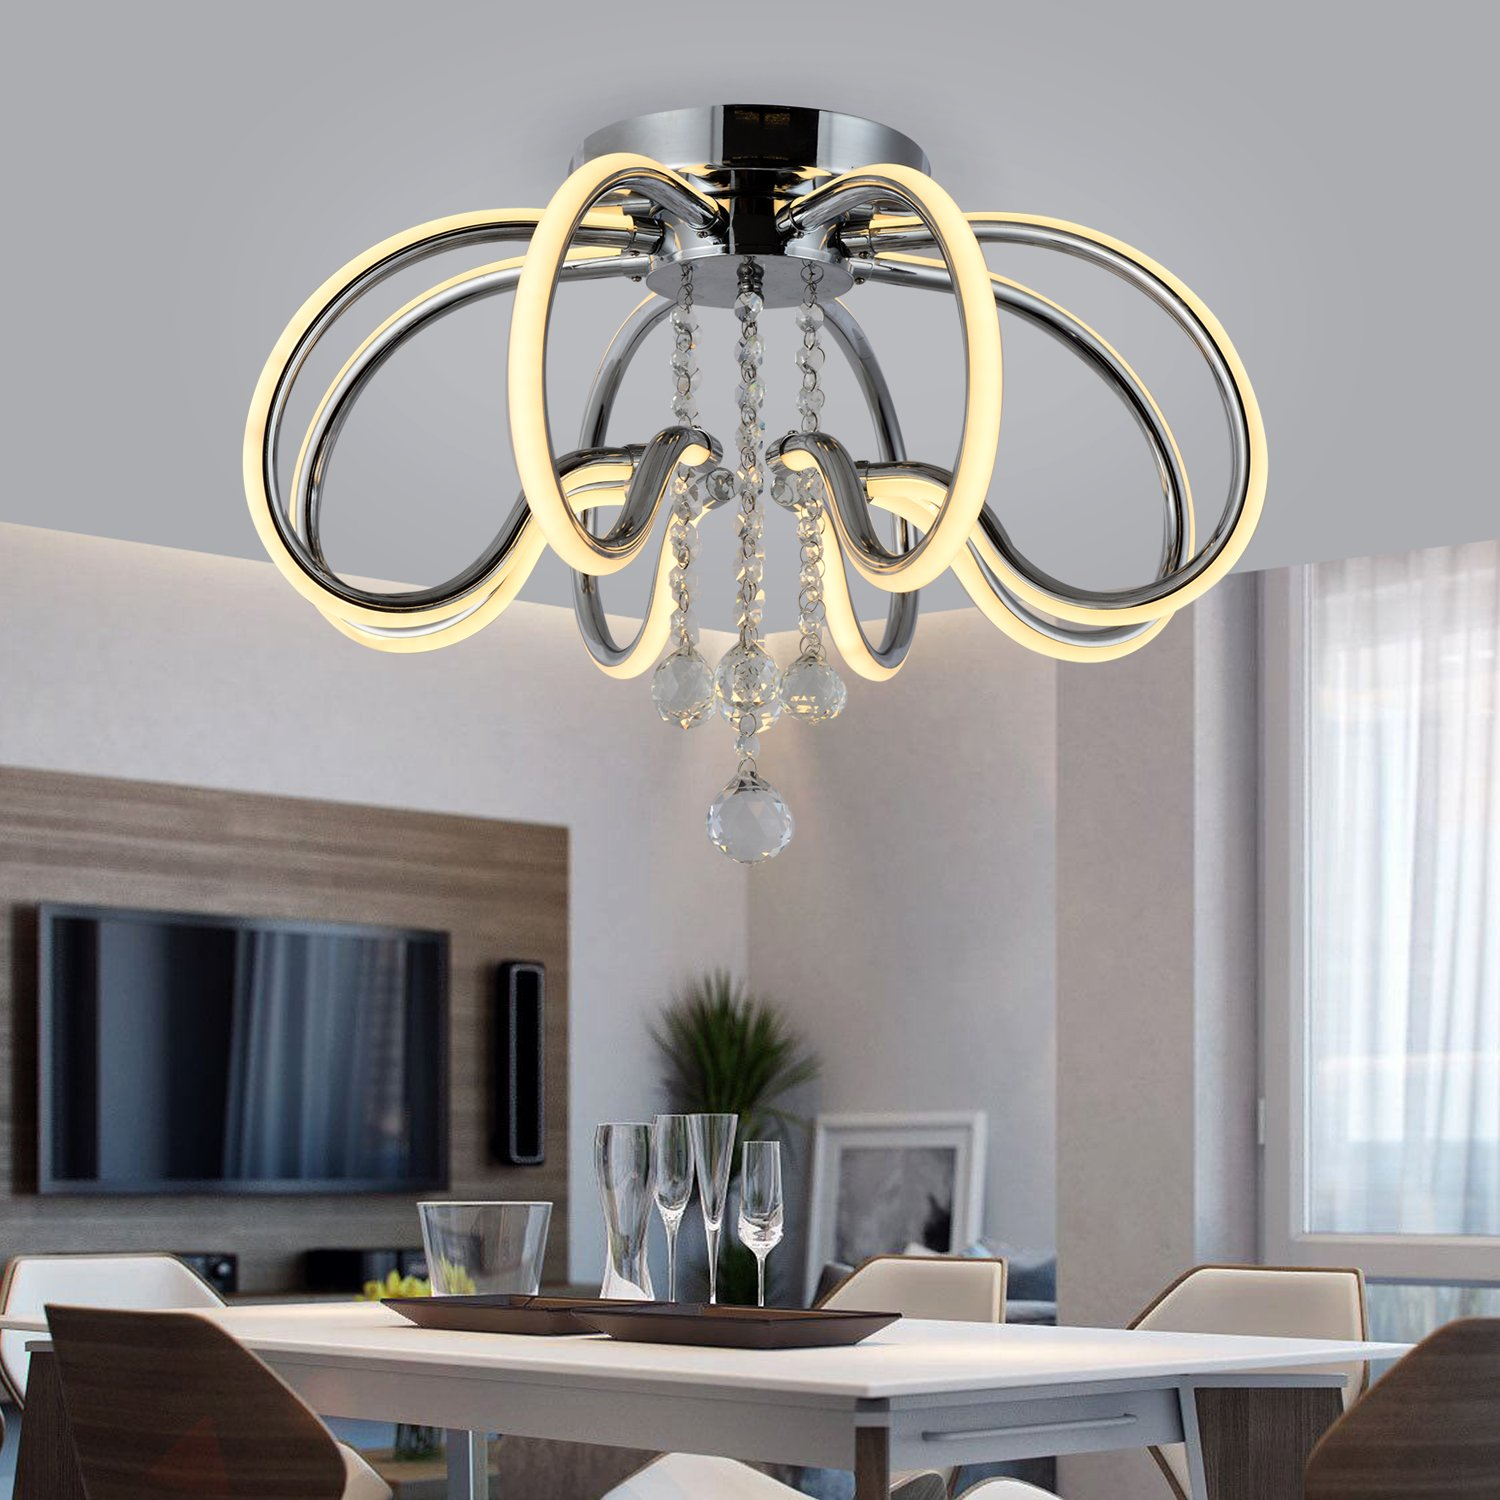 Chandelier Ceiling Light Ceiling Lamp Pendant Light Chandelier LED Dimmable Contemporary Metal Crystal Ceiling Lamp Pendant Light for Living Room,Bedroom ,Dining Room ,Children's Room Bulb Included